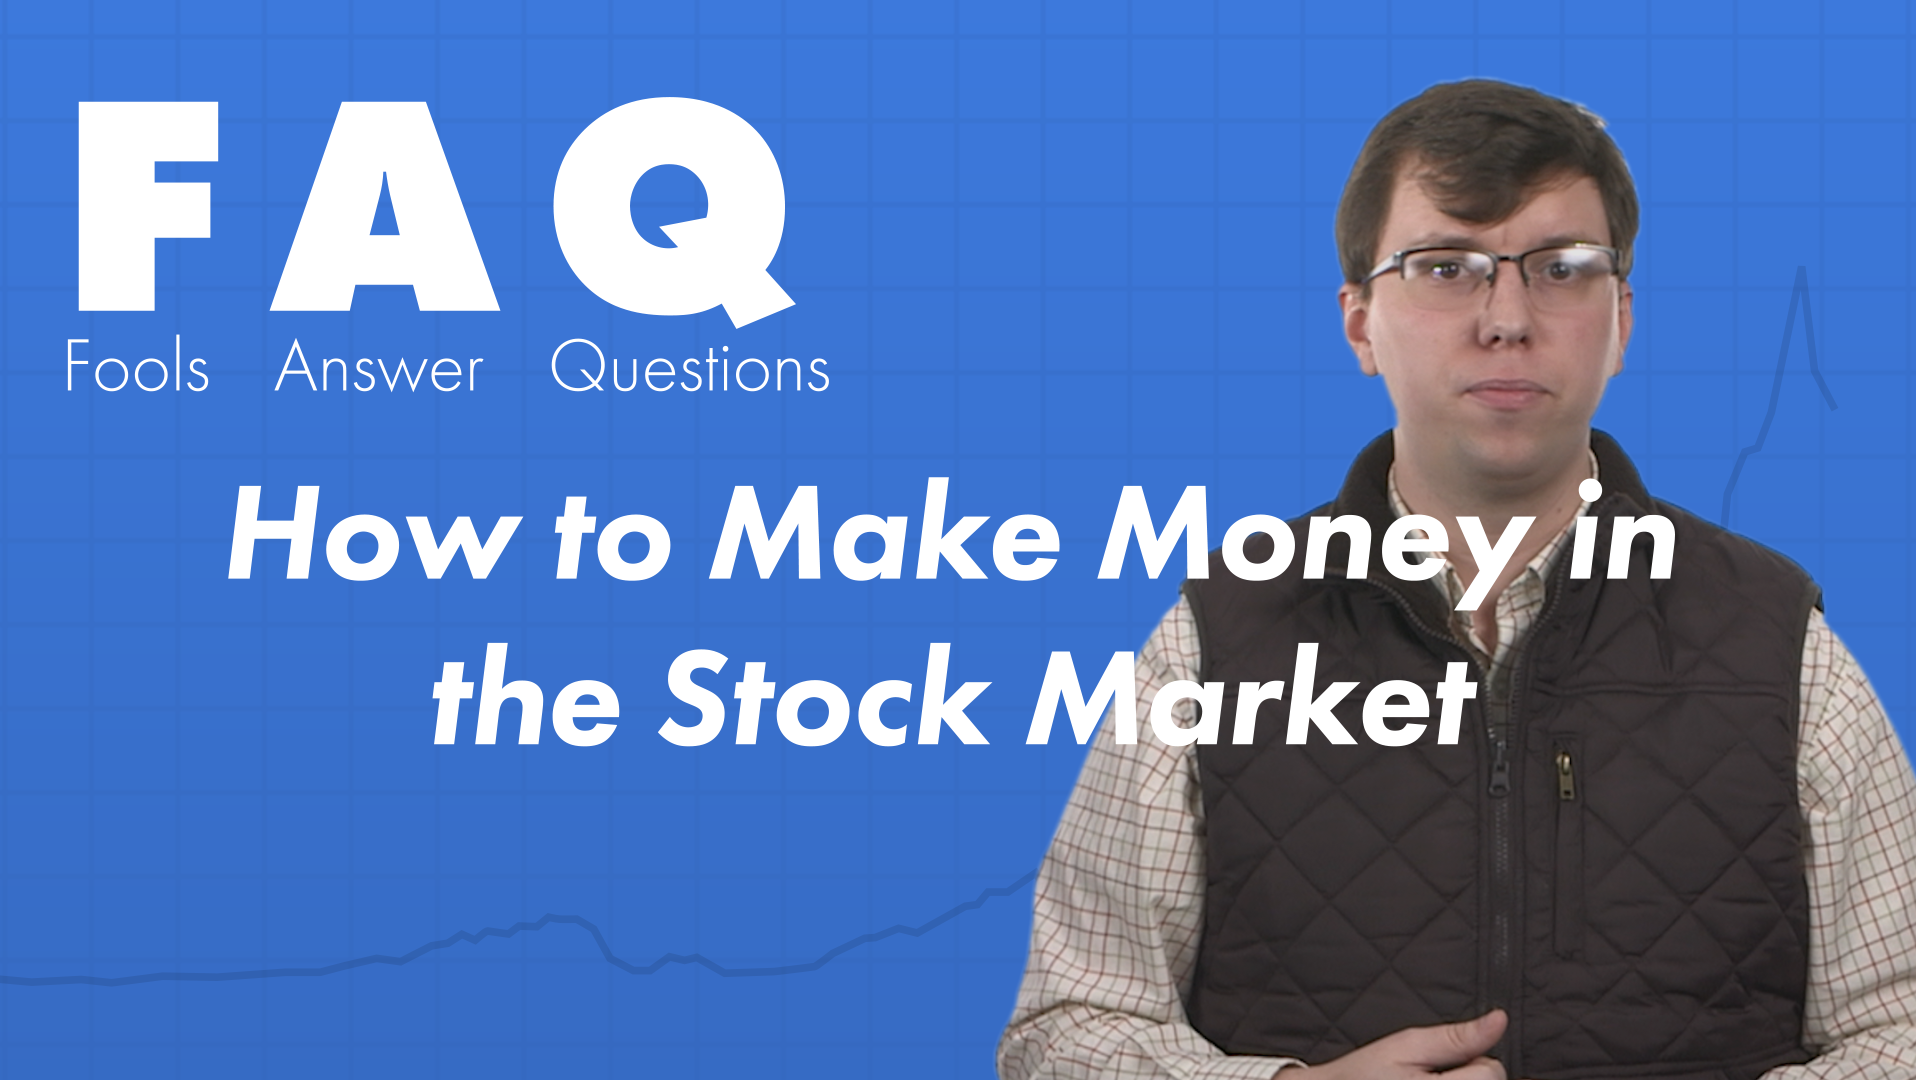 How Do You Make Money in the Stock Market? | The Motley Fool